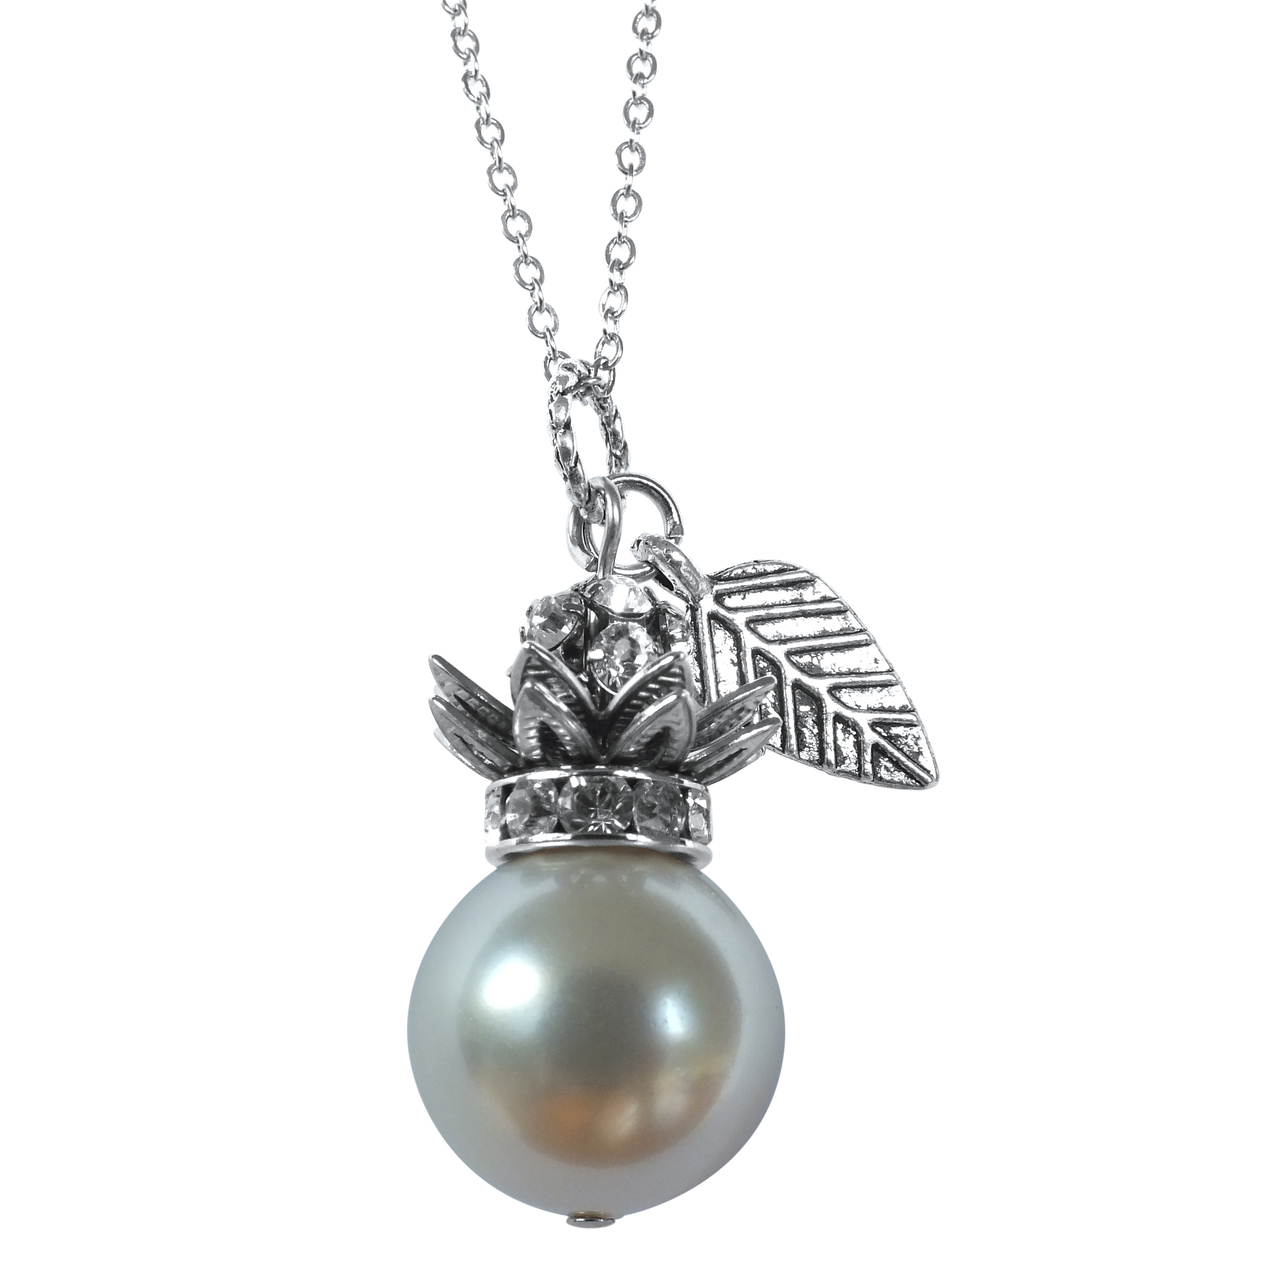 white_pearl_rhodium_necklace_seriously_twisted_banksia_blossom_collection_sydney_australia__78127.1422965208.1280.1280